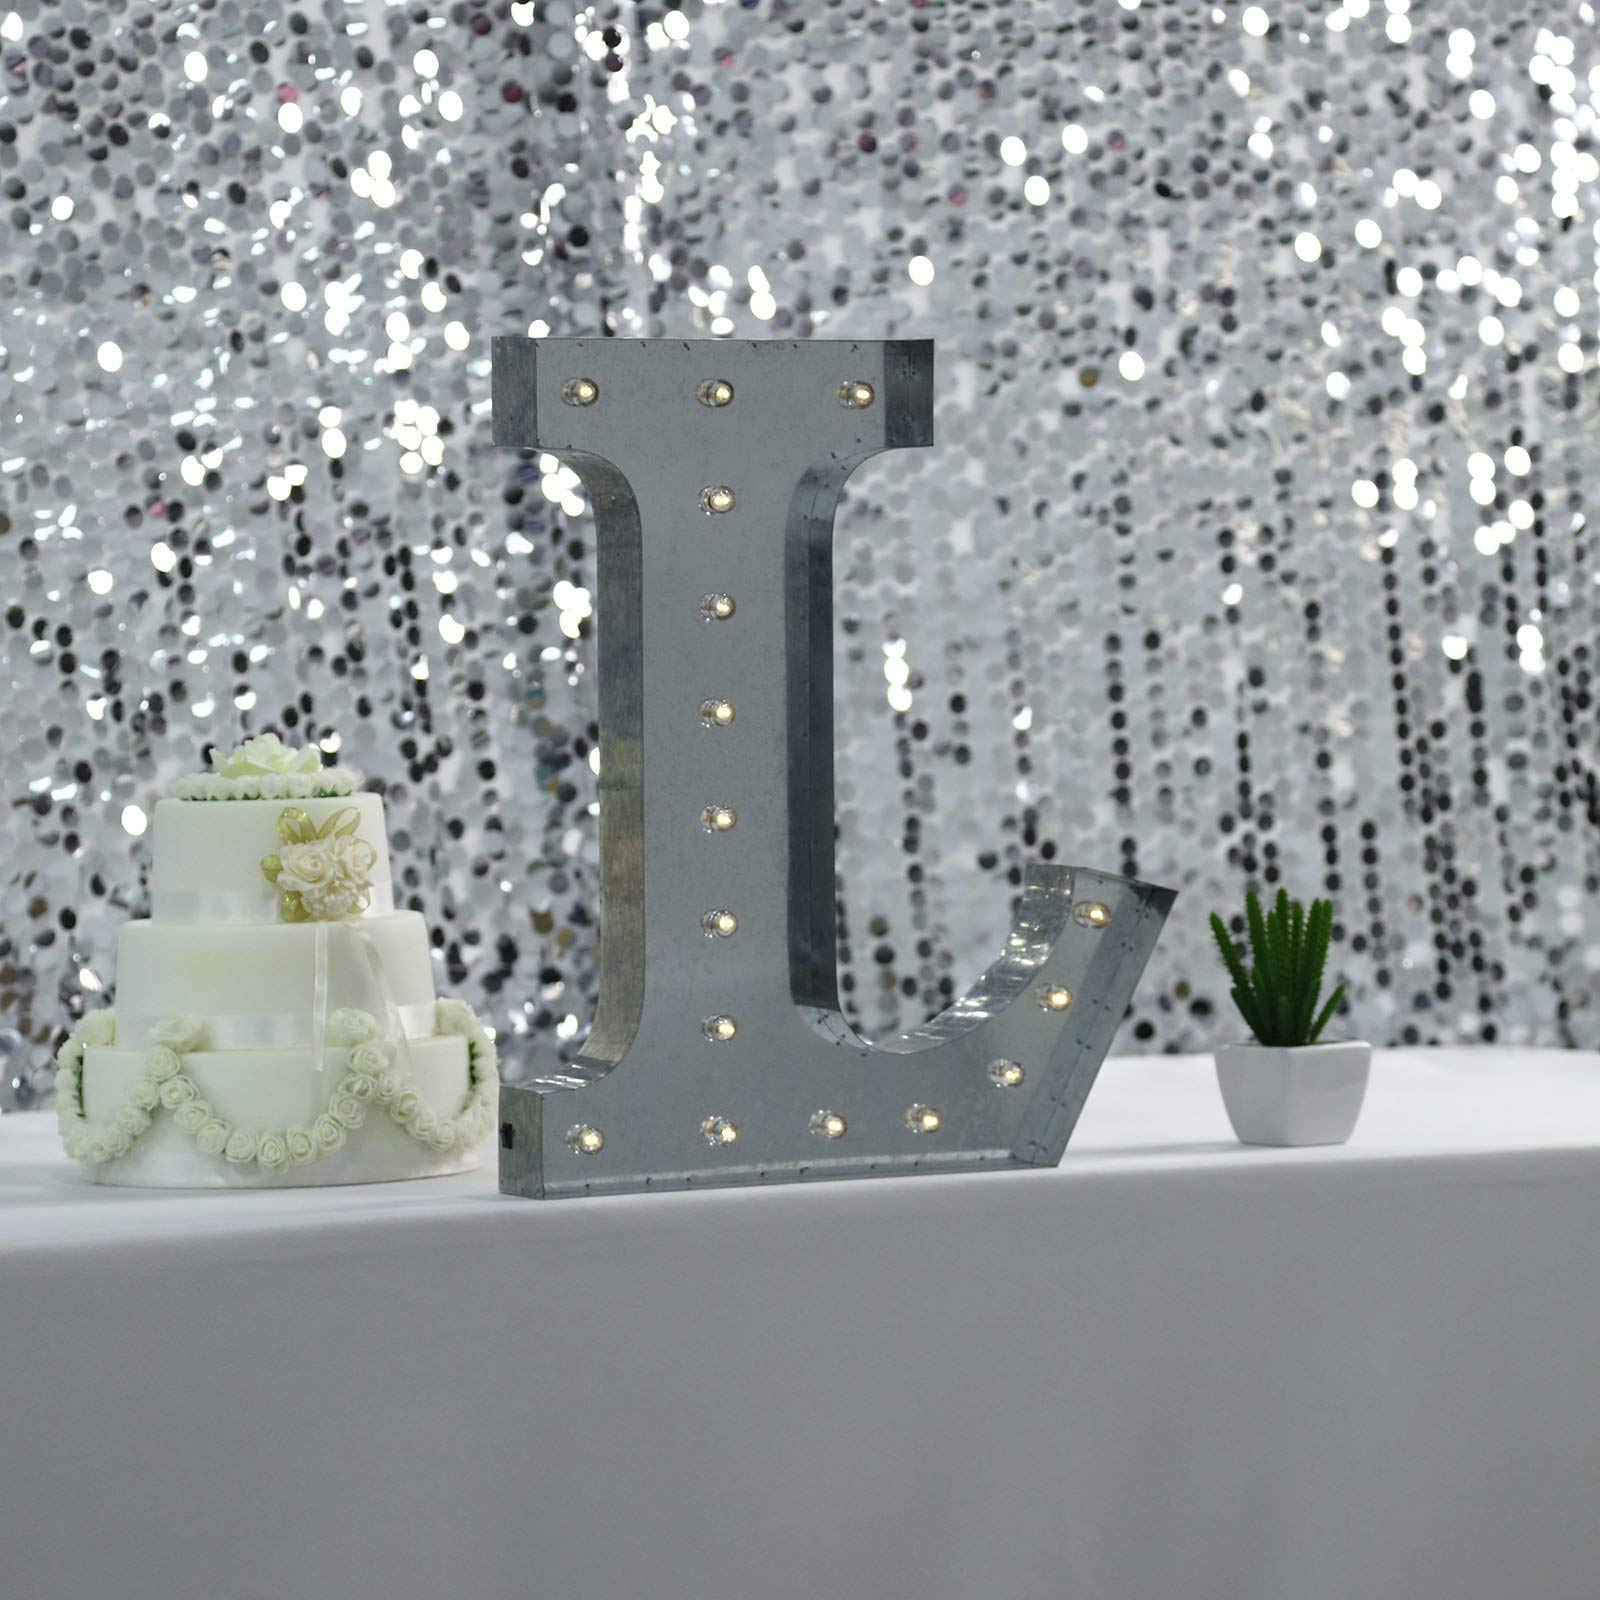 Tableclothsfactory 2 FT | Vintage Metal Marquee Letter Lights Cordless with 16 Warm White LED - L by Tableclothsfactory